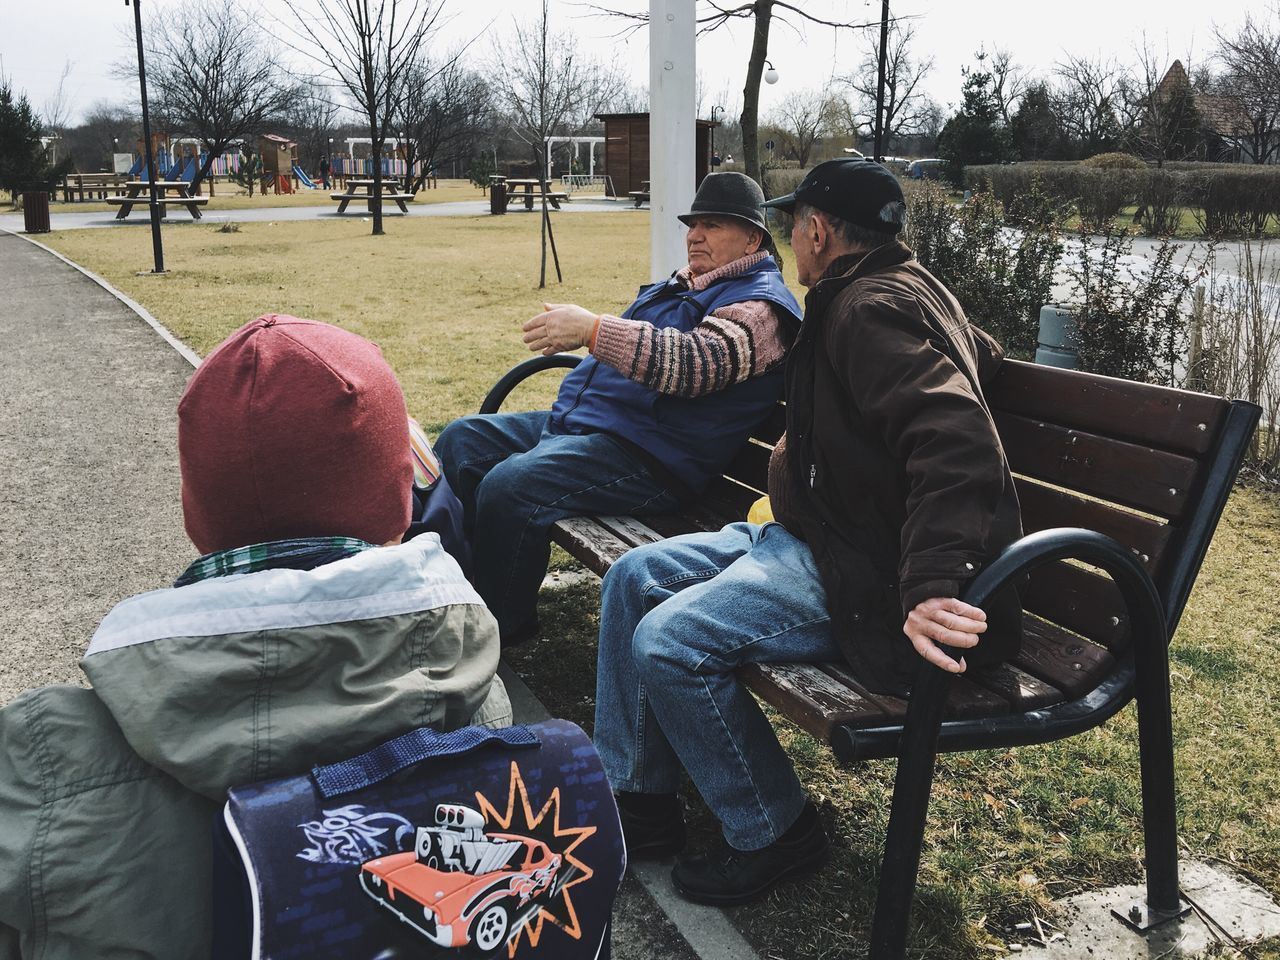 Generation gap... Warm Clothing Community Outreach Park Bench Parks Park Life Moments Of Life My Favorite Photo Fresh On Eyeem  Details Of My Life VSCO Senior Men City Life Made In Romania Discussion Relaxing Outdoors Child Street IPhone IPhoneography WeekOnEyeEm Sitting Citylife People Day